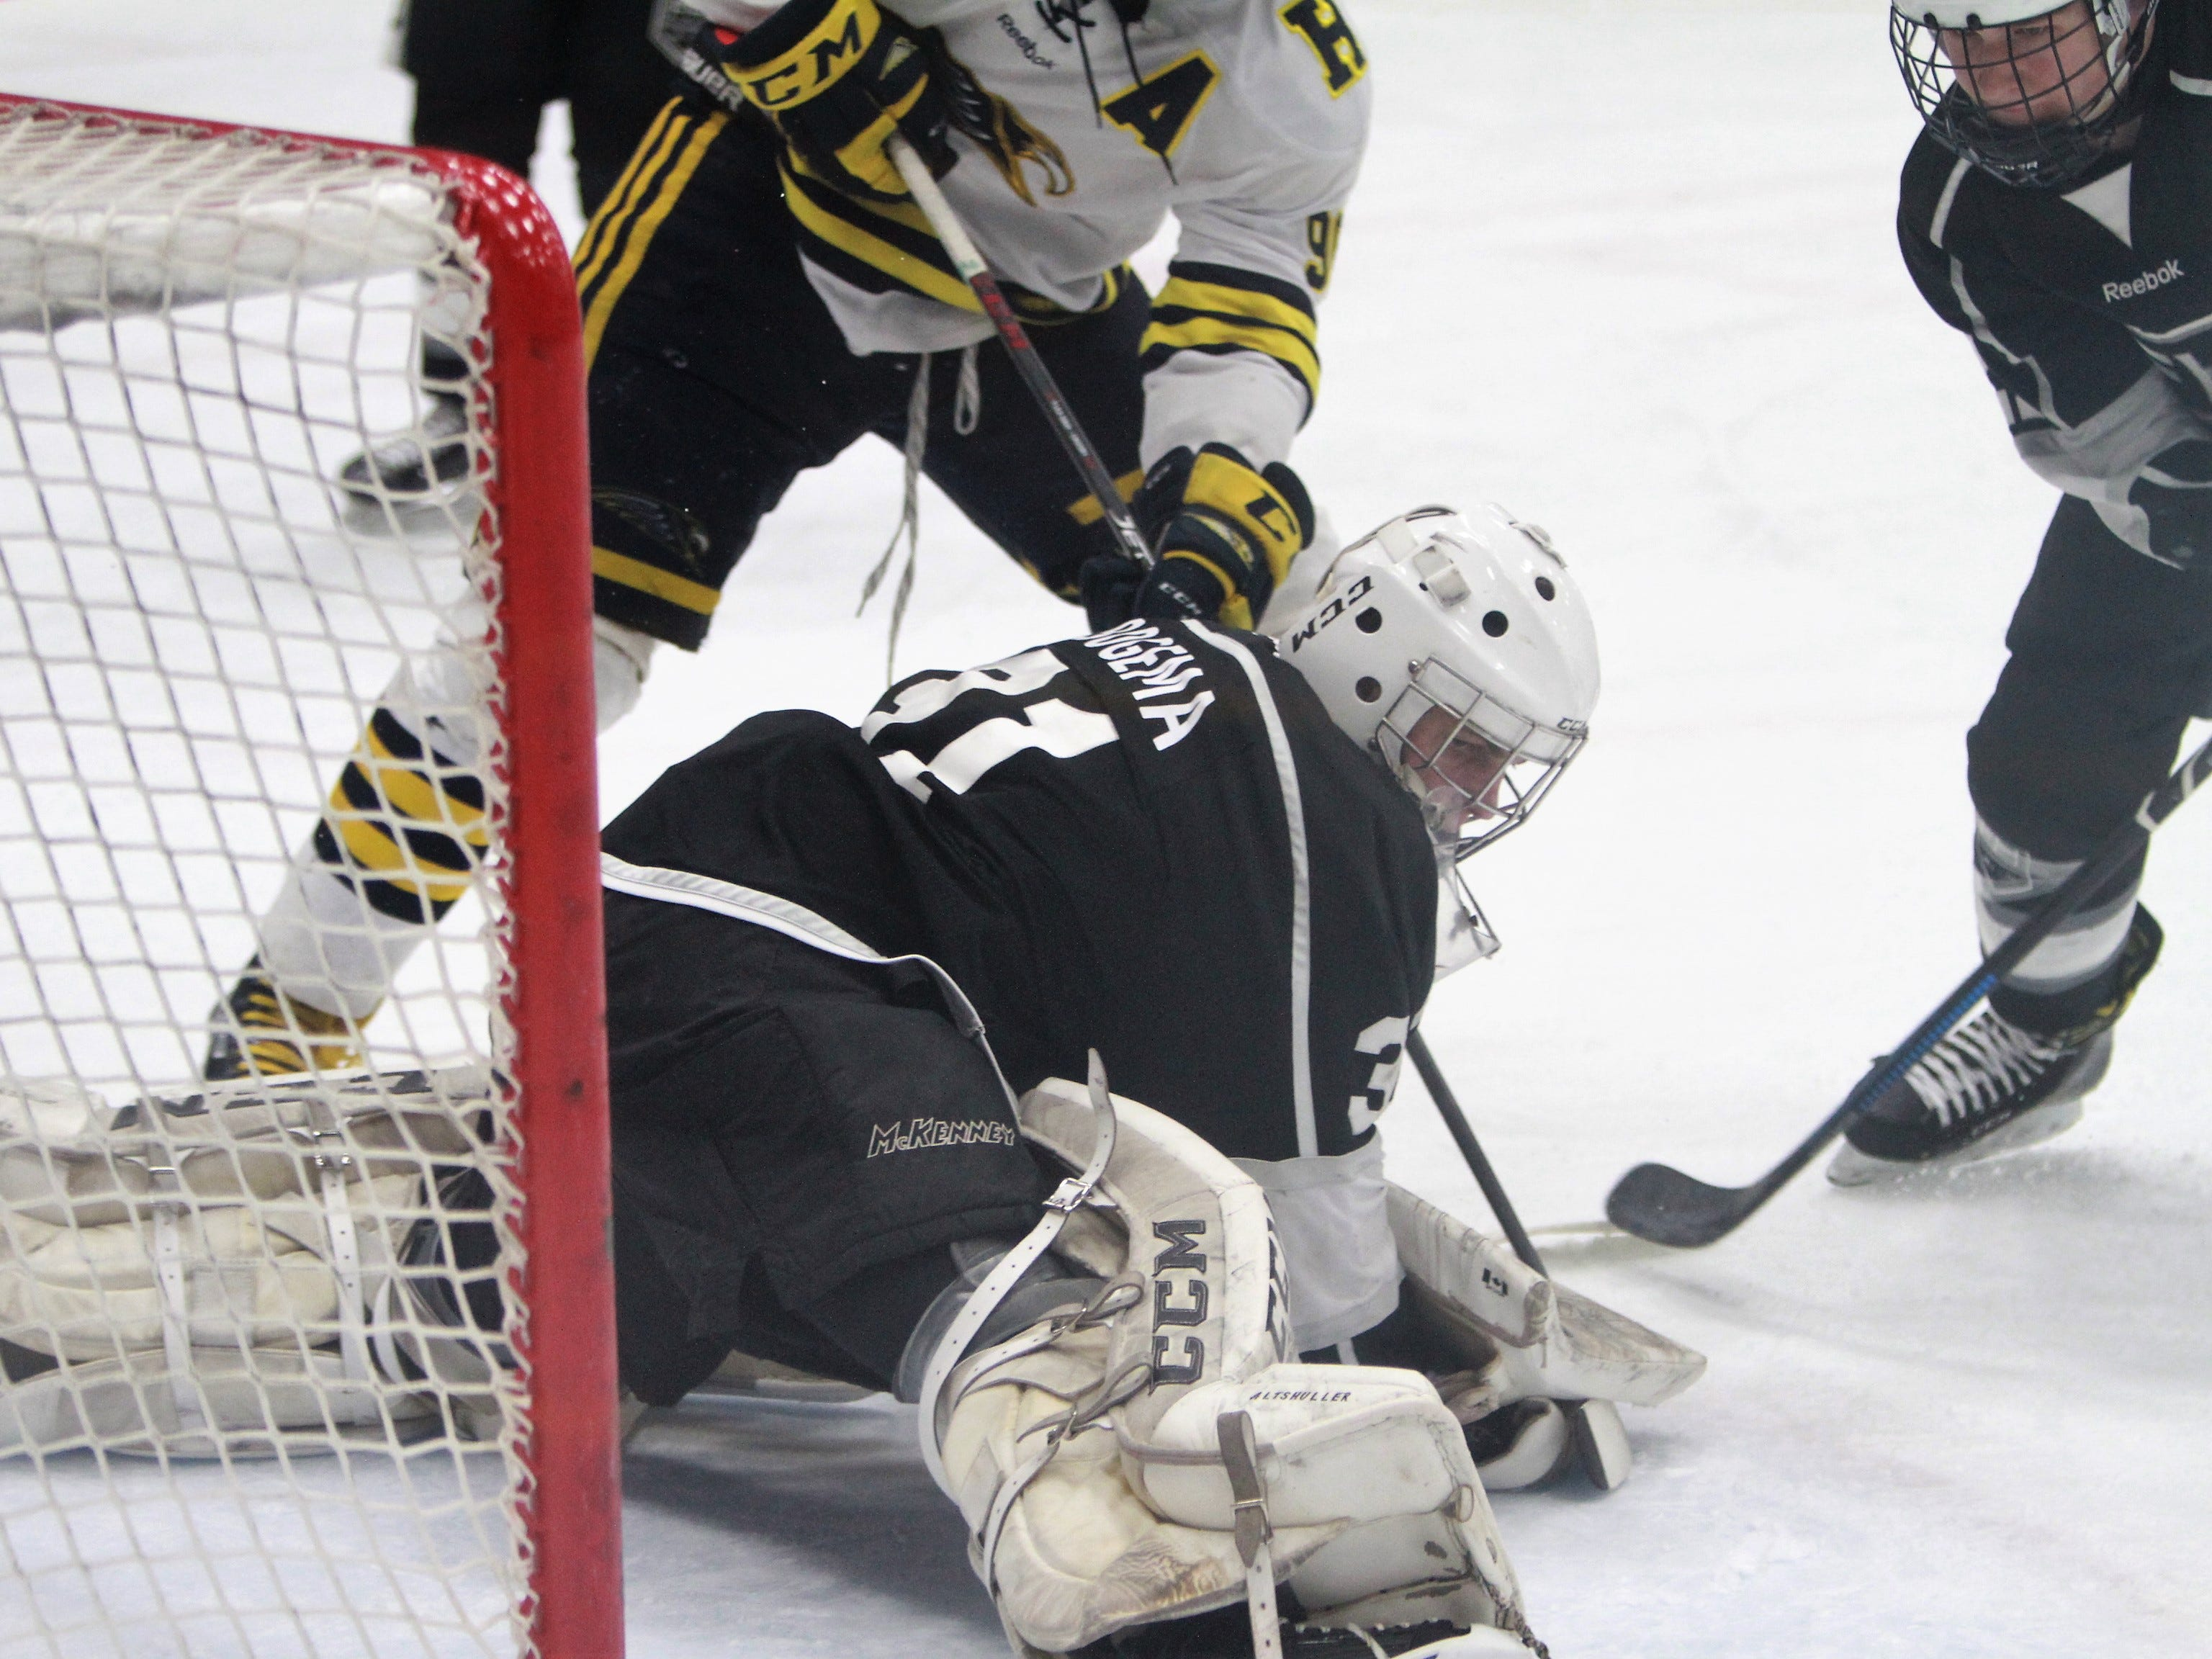 Forest Hills Eastern goalie Brenden Bogema makes a save during a 6-0 loss to Hartland in the state Division 2 hockey quarterfinals in Flint on Tuesday, March 5, 2019.